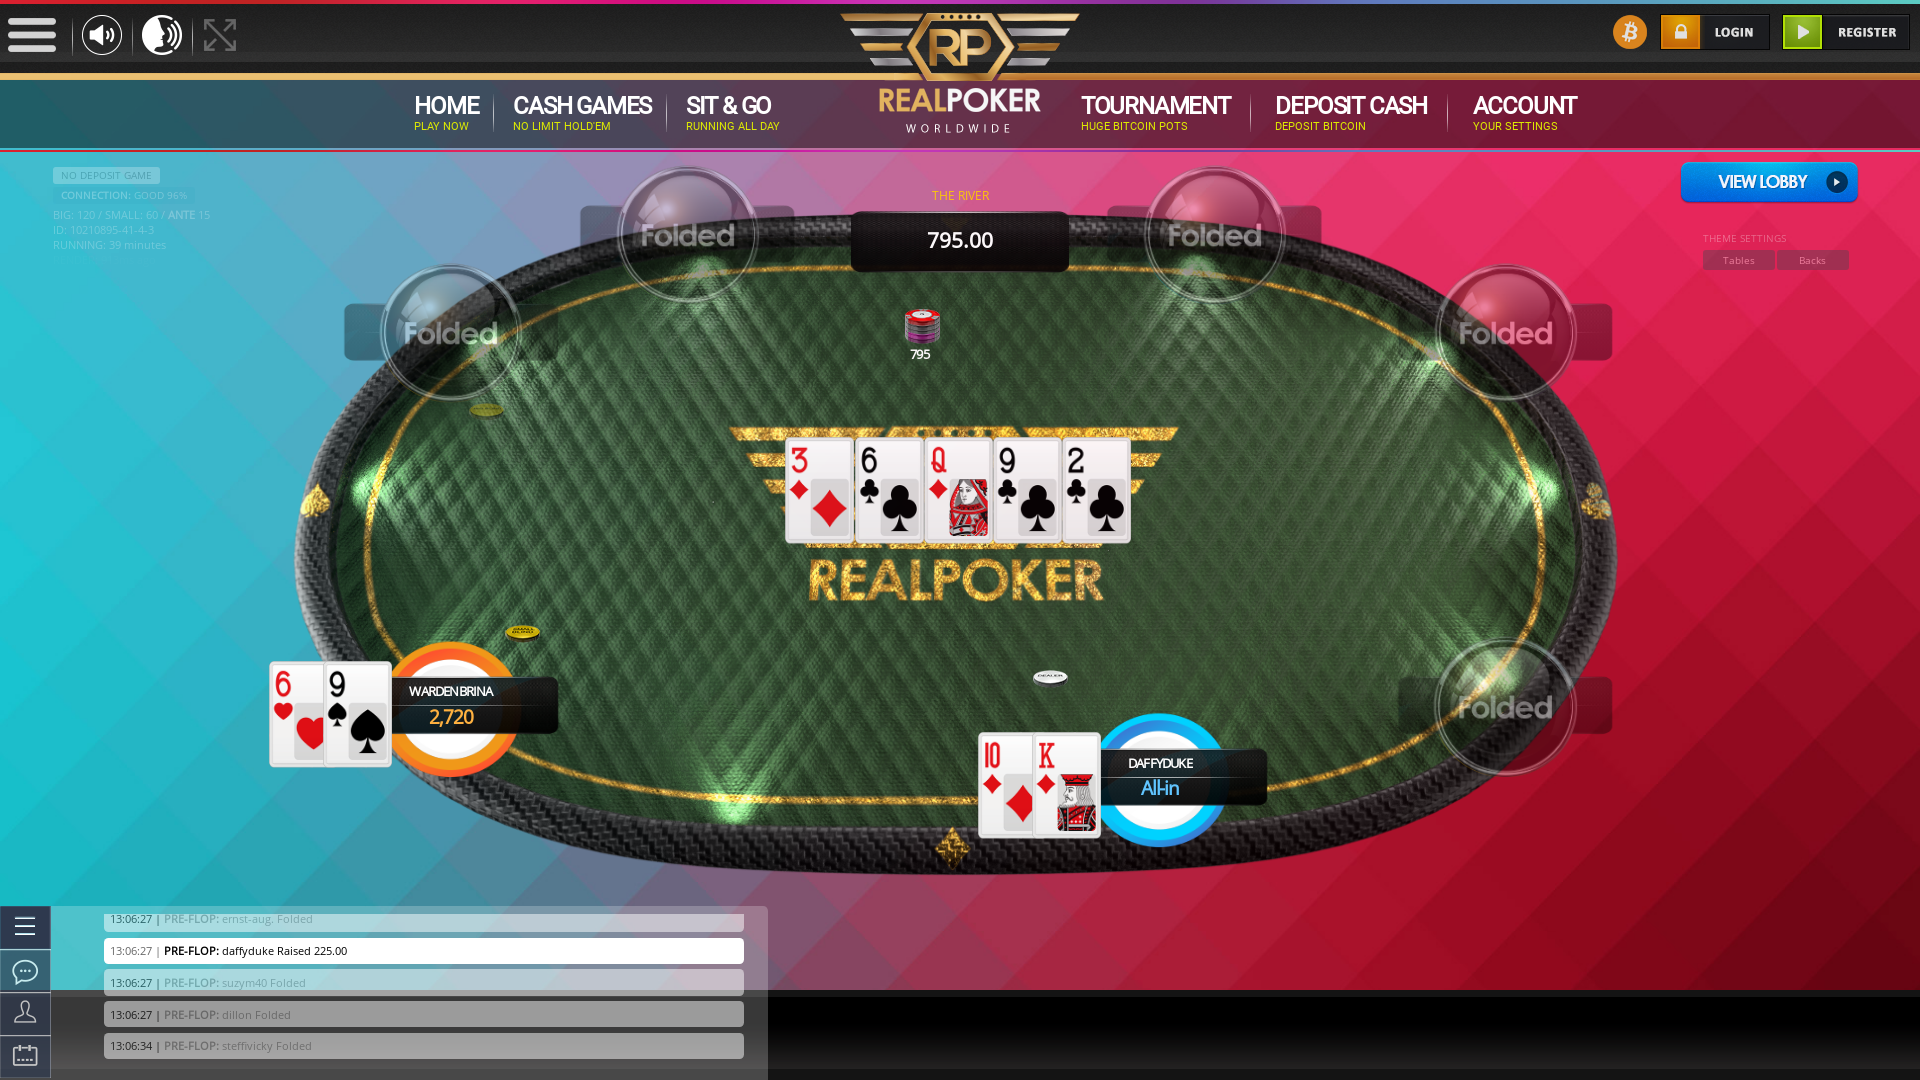 Real poker 10 player table in the 38th minute